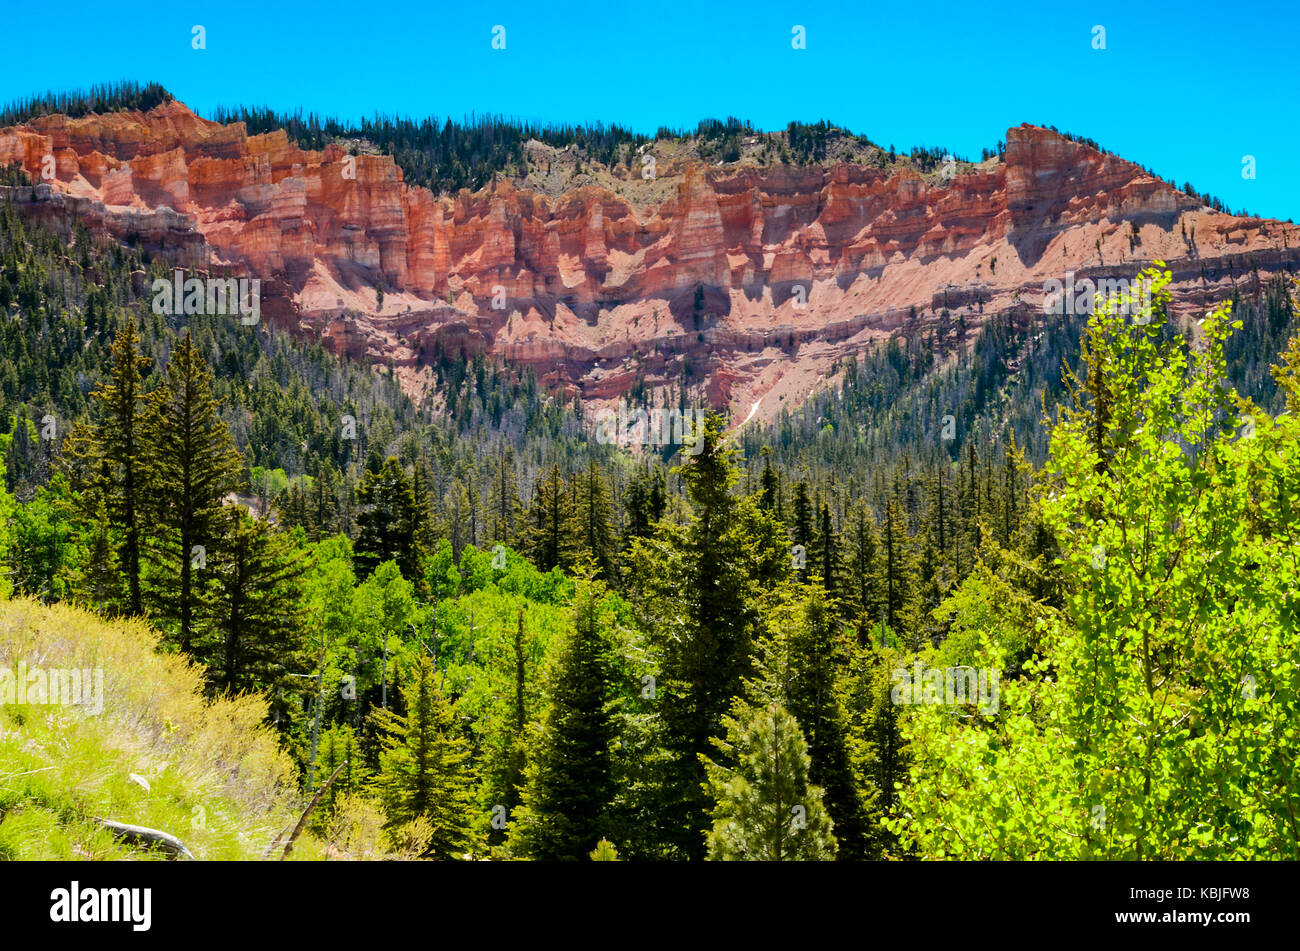 Cedar Breaks National Monument Utah, USA - Stock Image